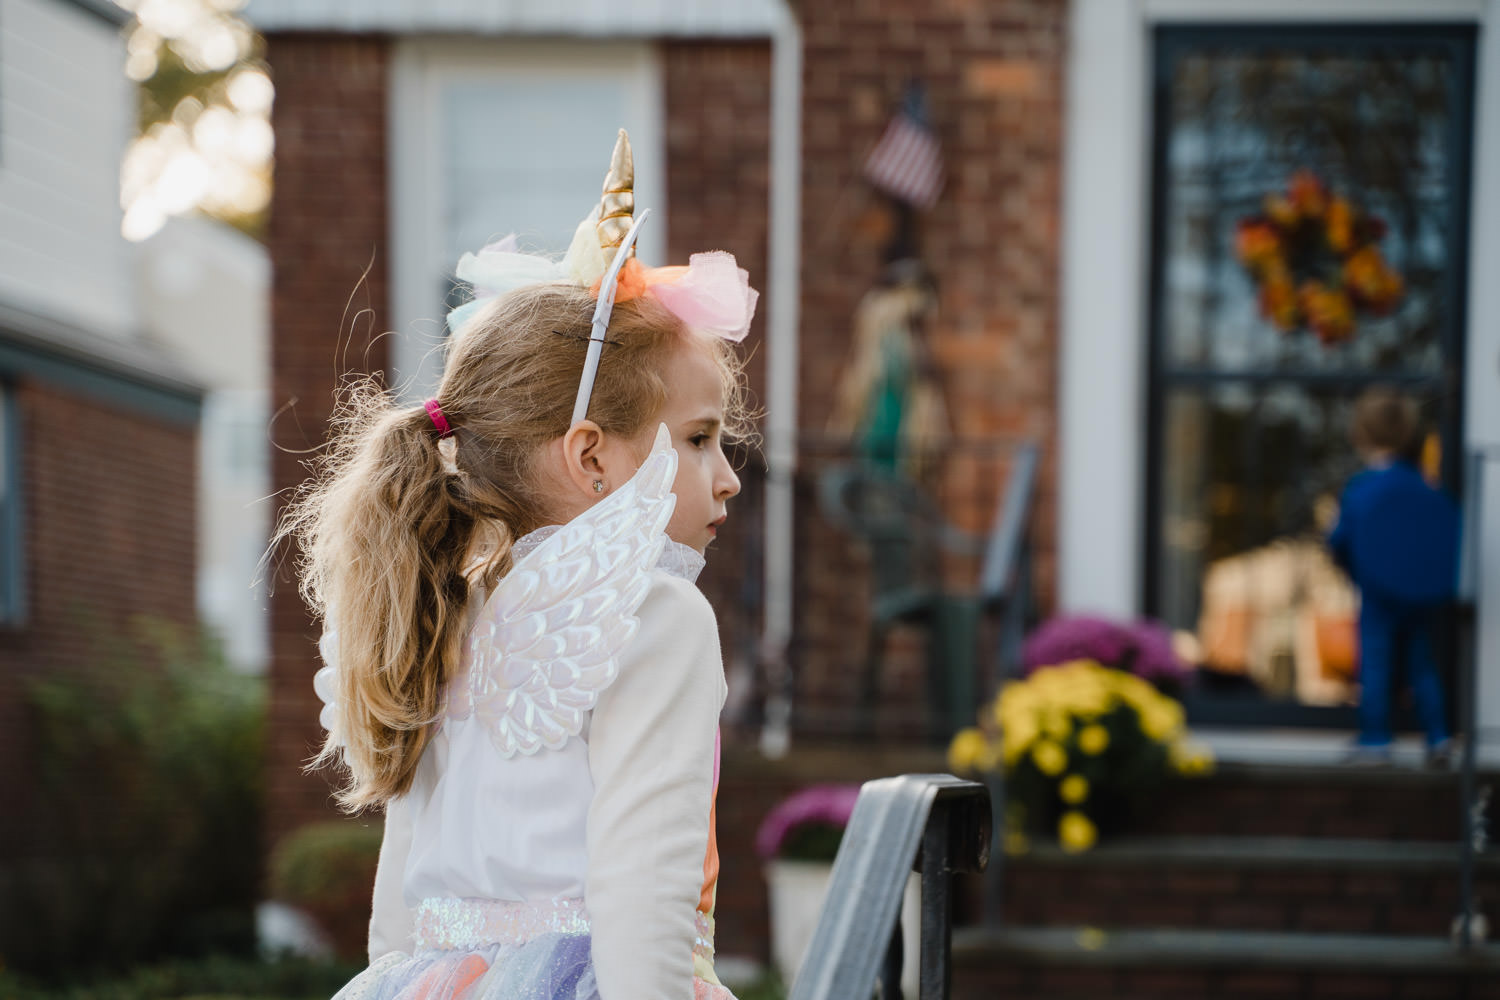 A little girl dressed as a unicorn goes trick or treating.